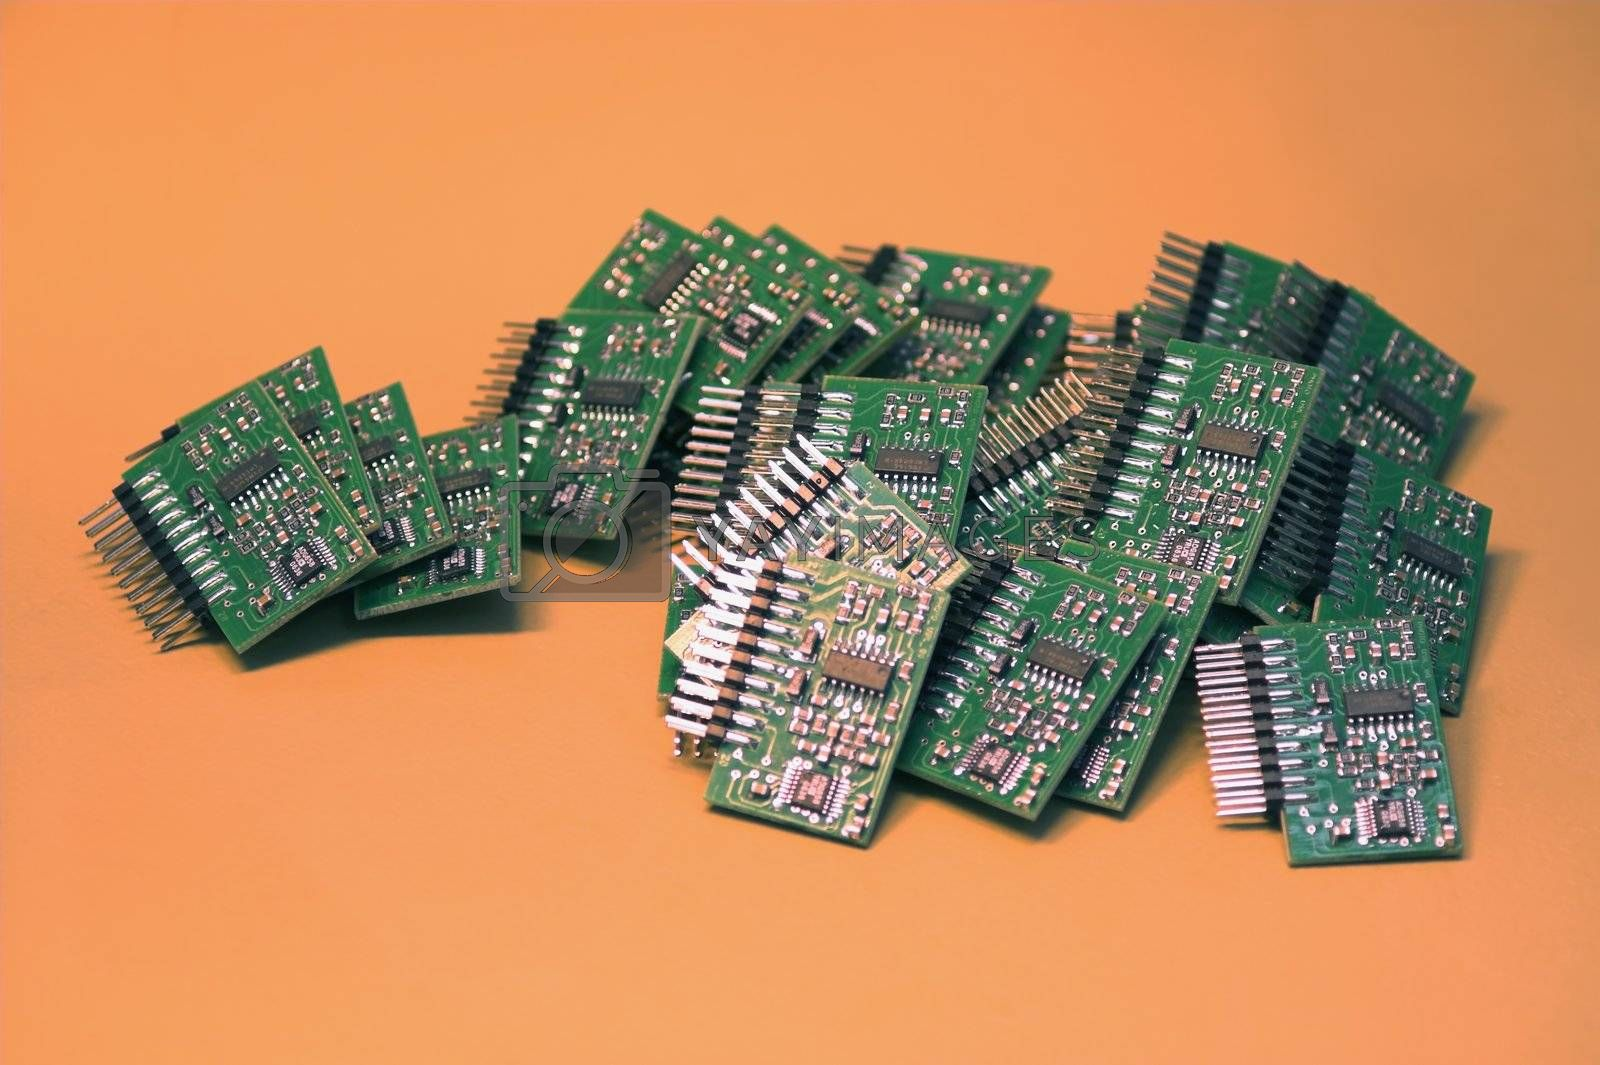 A heap of microchips lying on a table.